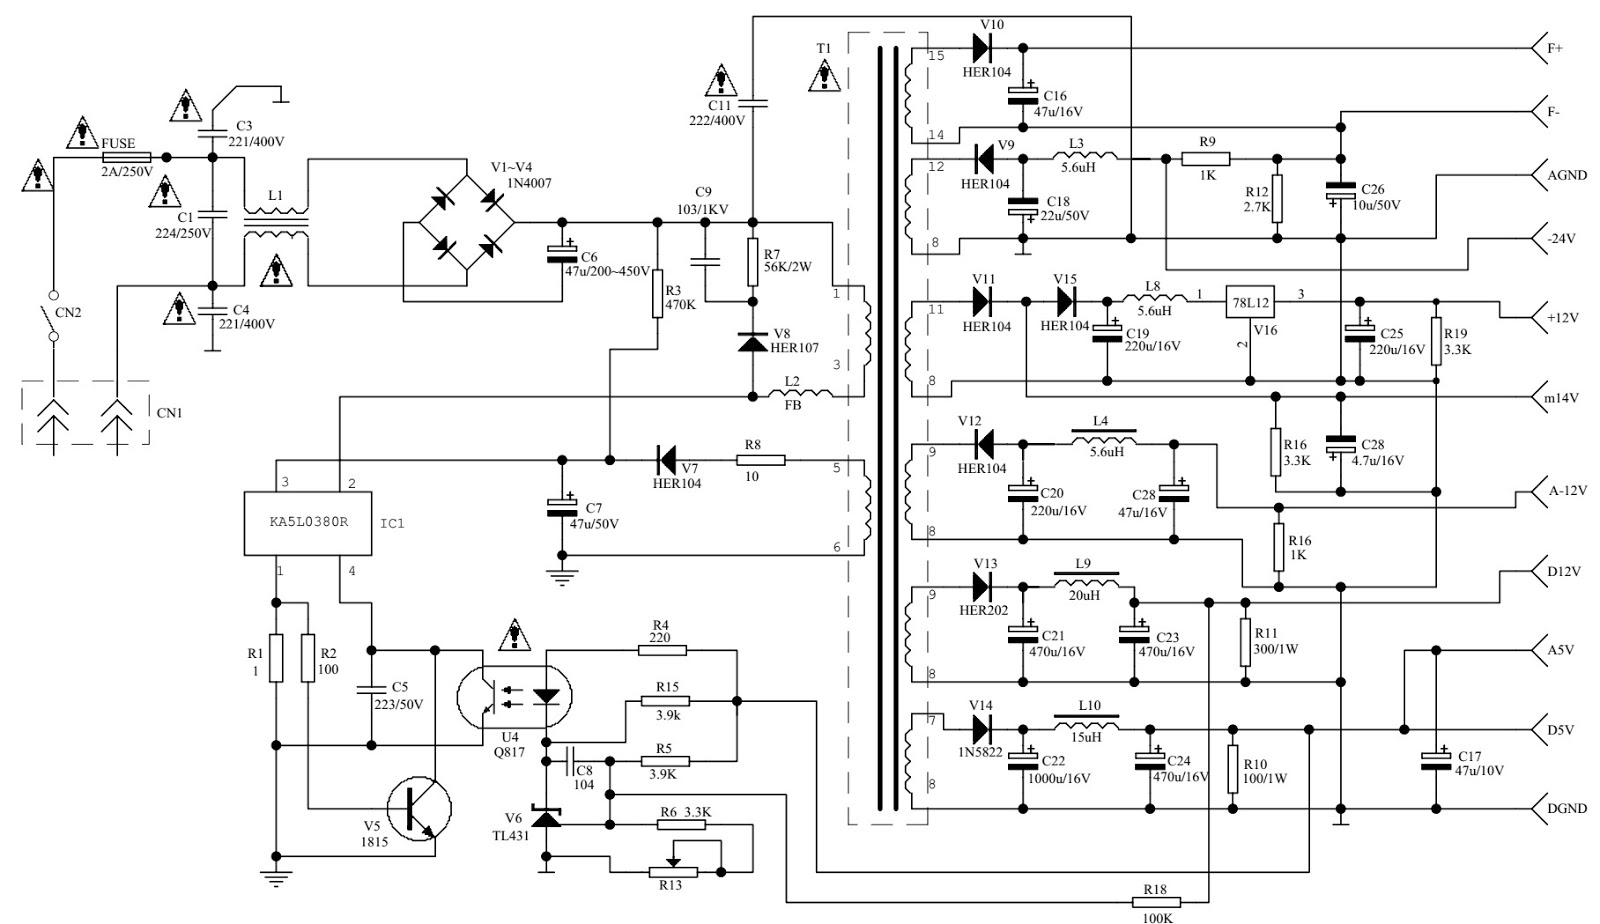 medium resolution of sony home theatre circuit diagram akai htc s 01t dvd home theater system